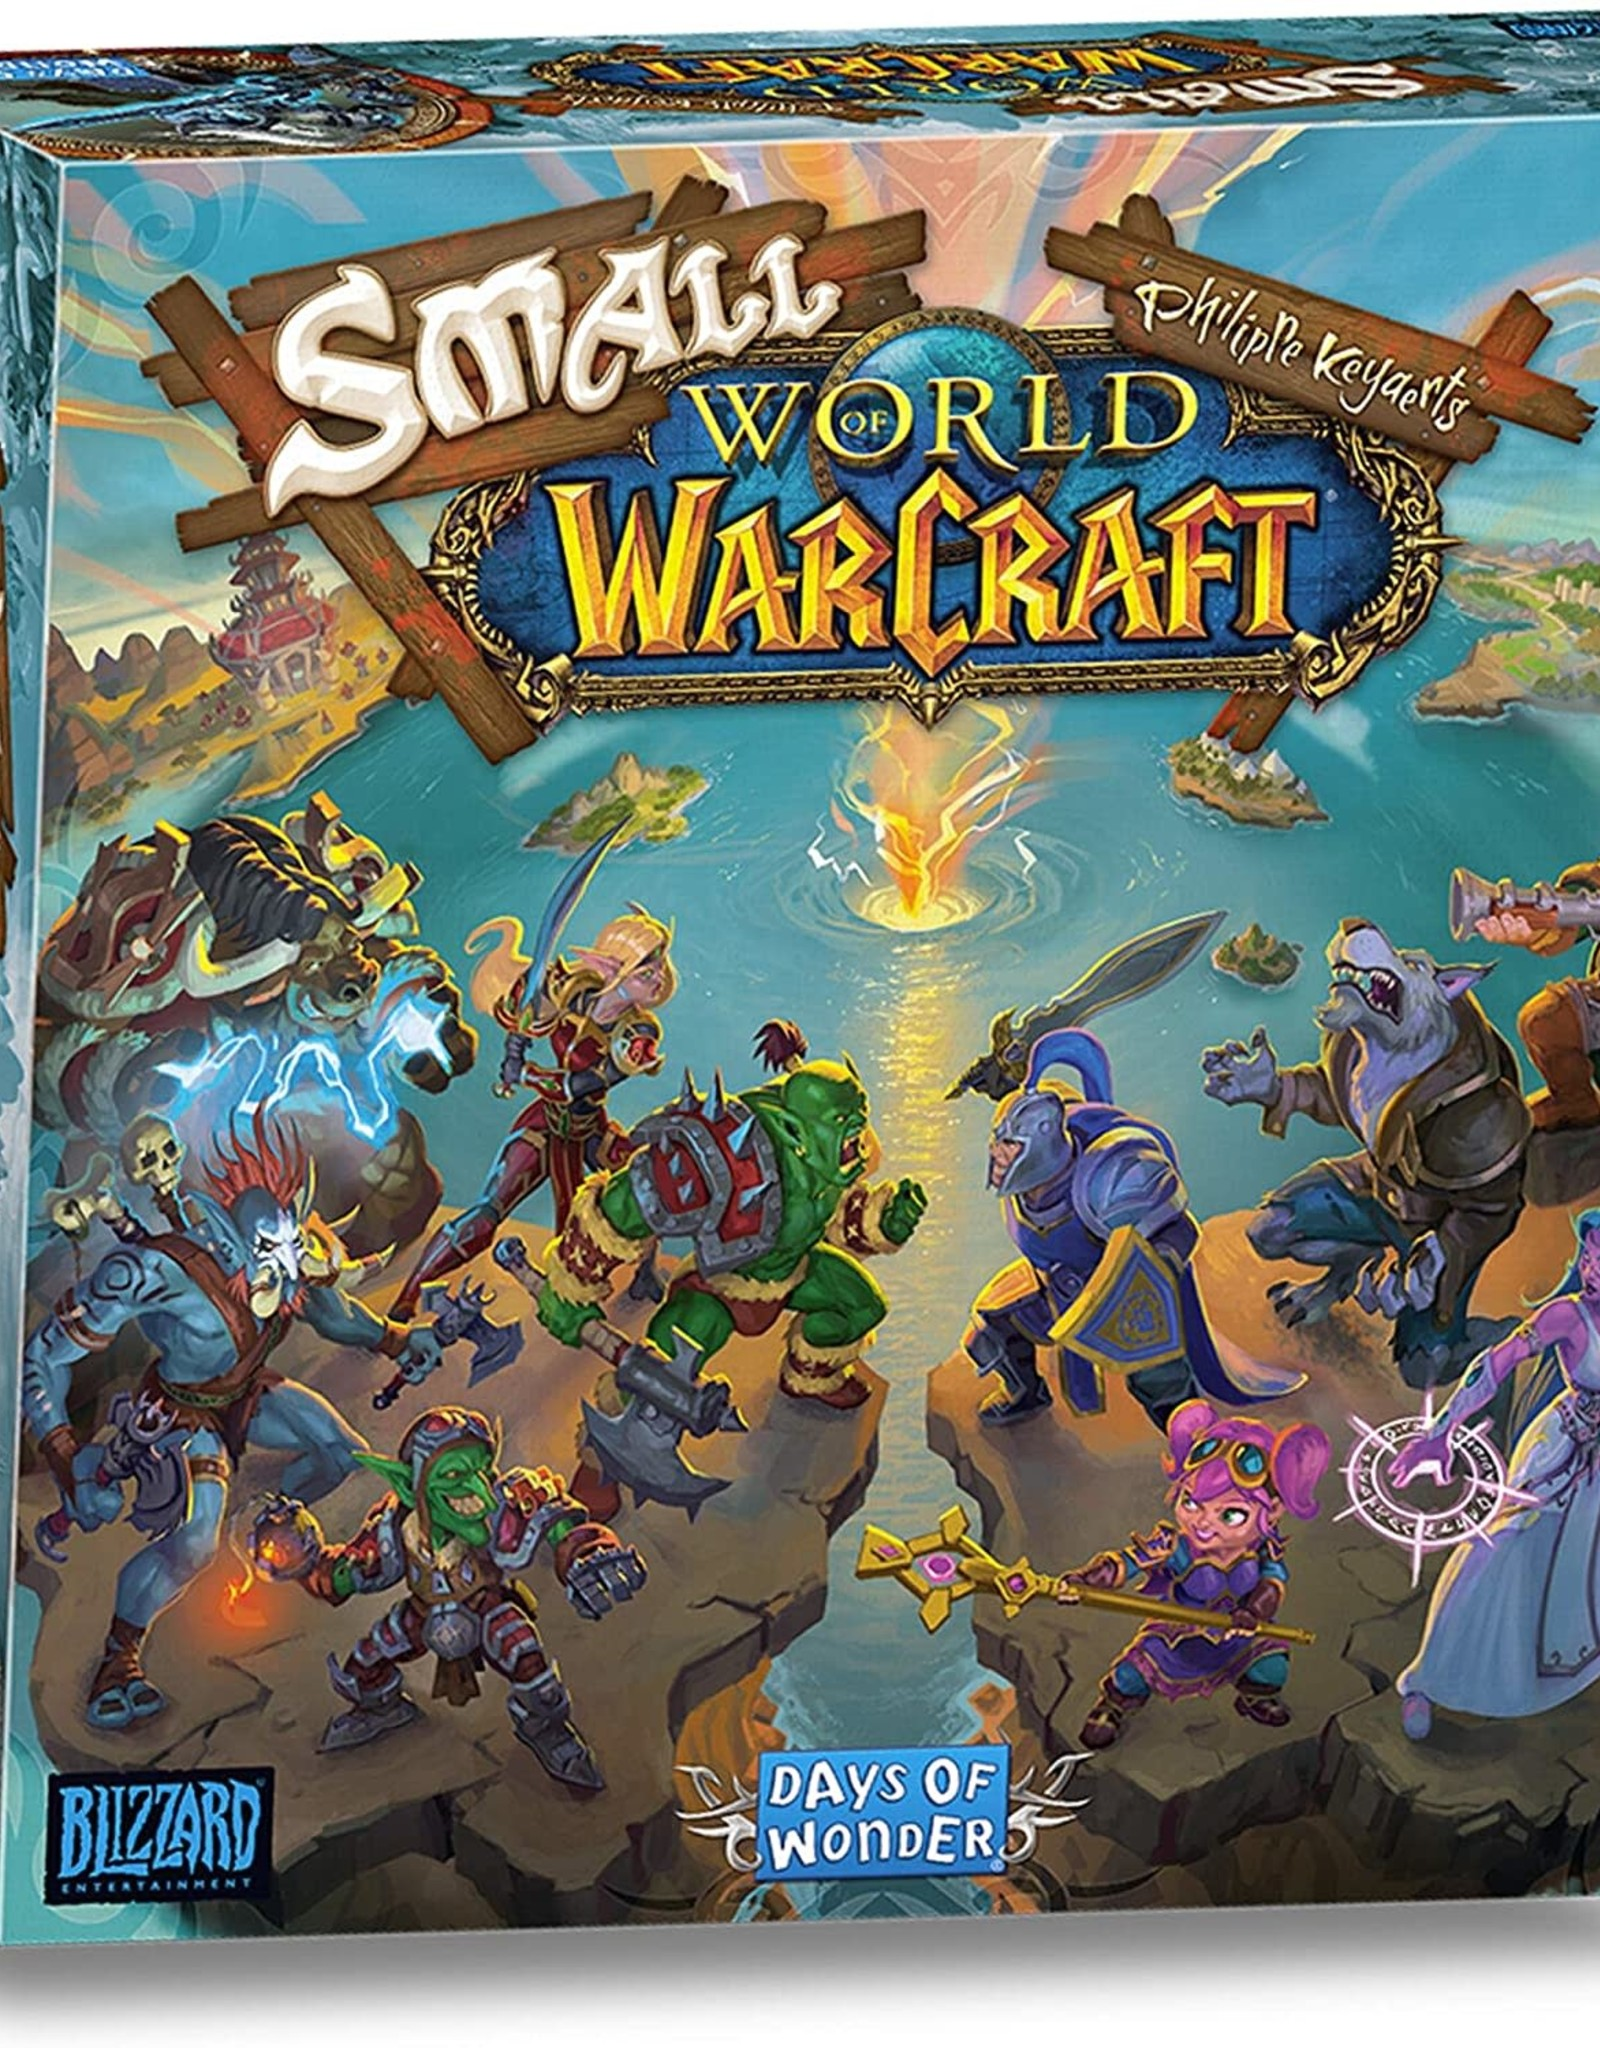 RENTAL - Small World of Warcraft 4 lb 9.7 oz